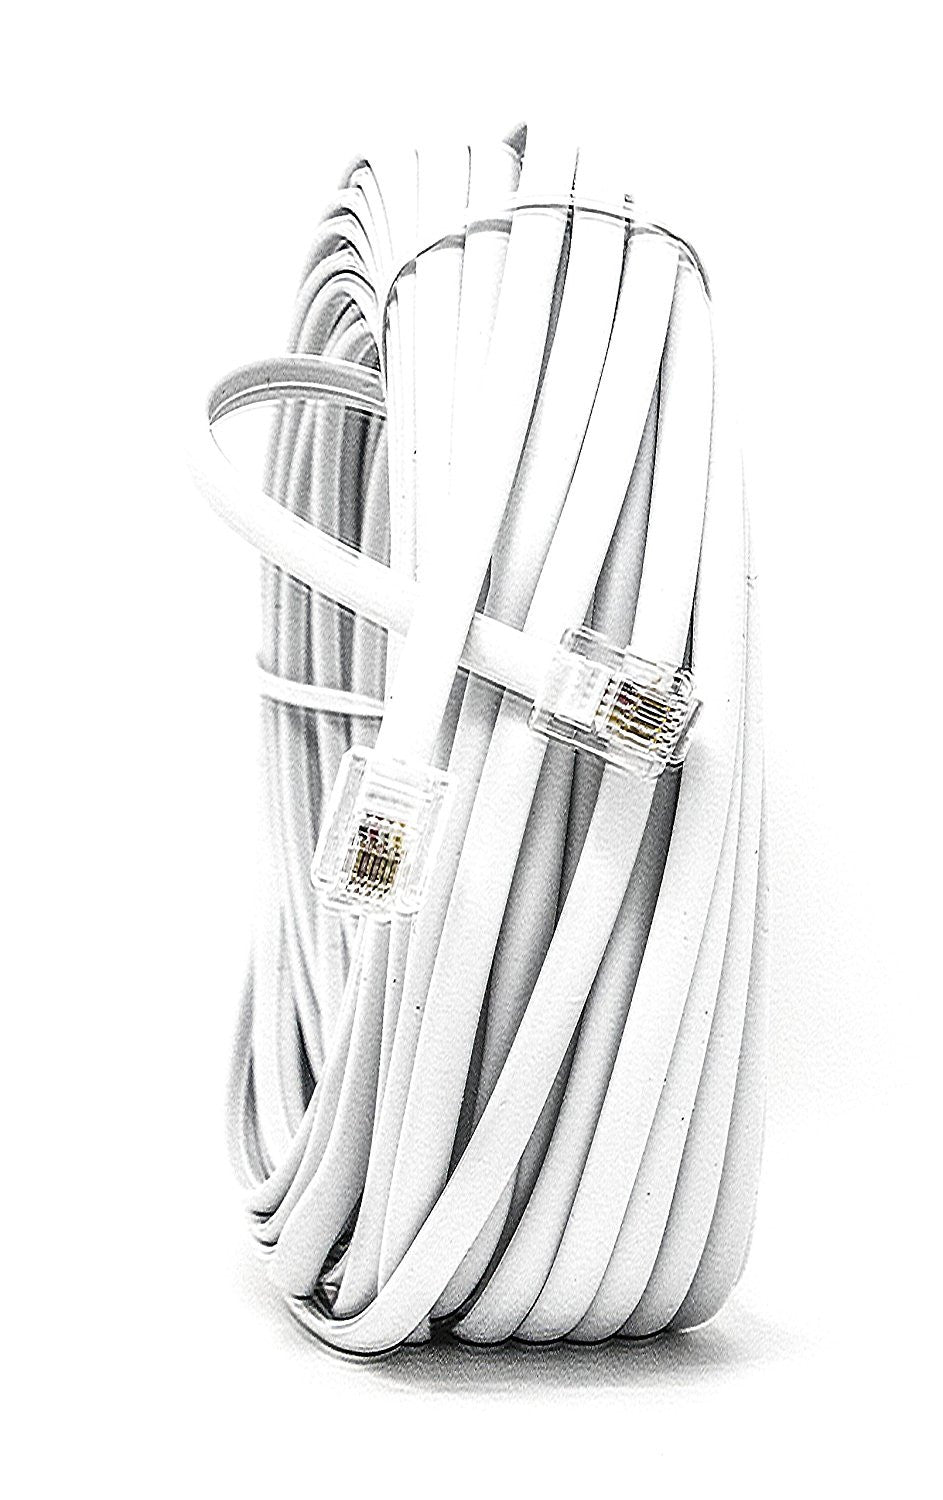 White 50 FT. Phone Telephone Extension Cord Cable Line Wire - - iSoHo Phone Accessories